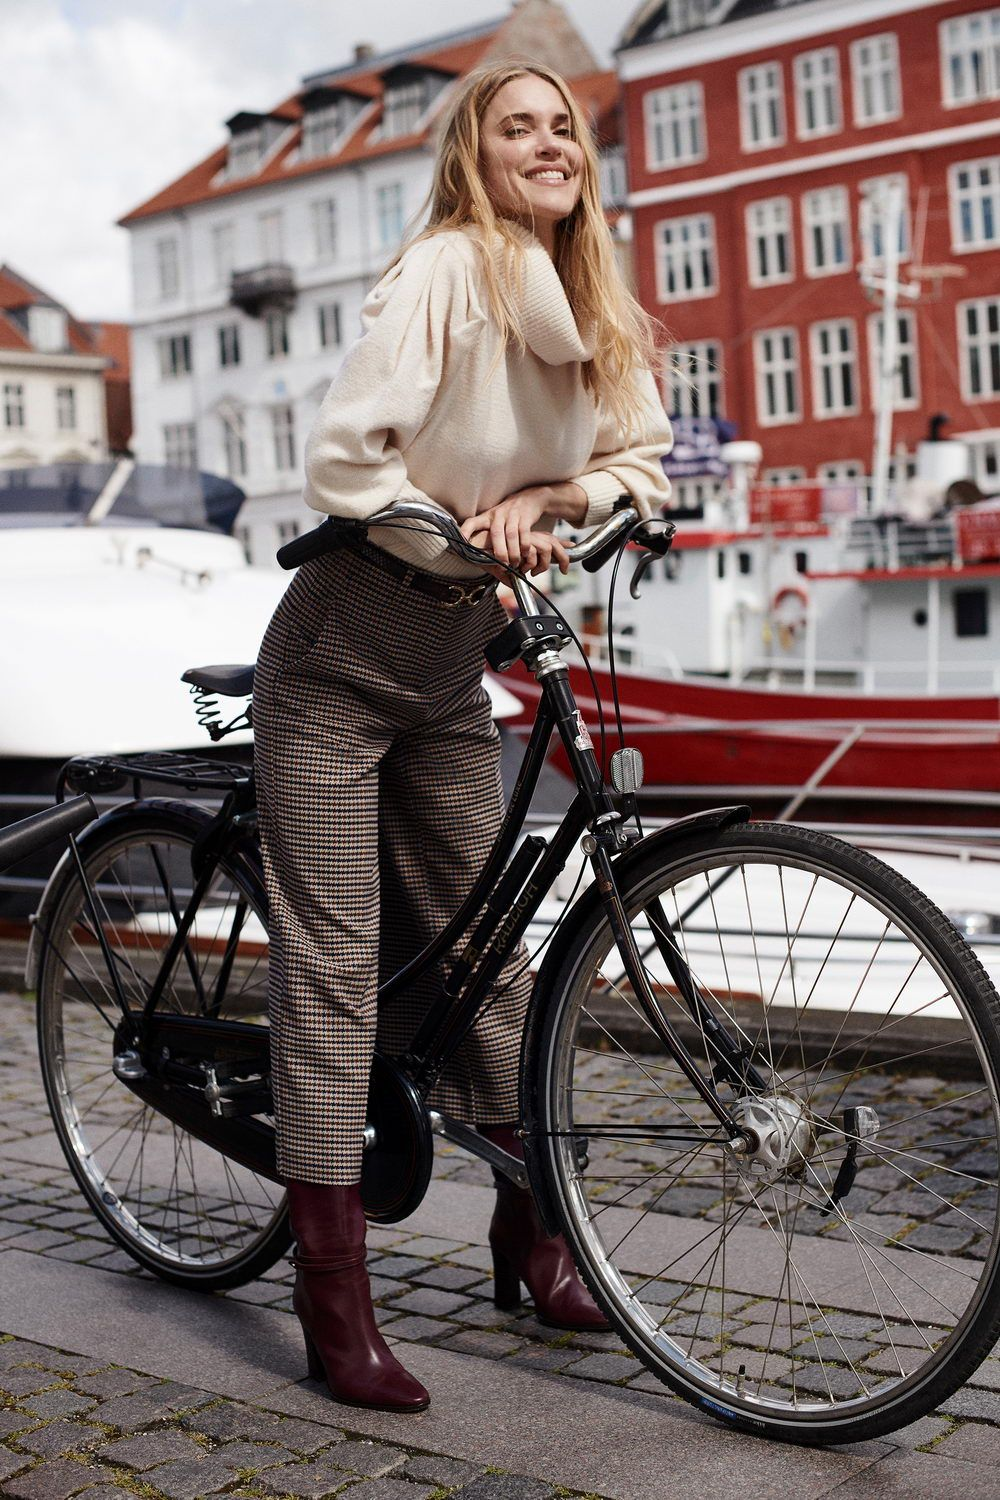 190705_Shot01_pernille_canal_streets_0874_resize